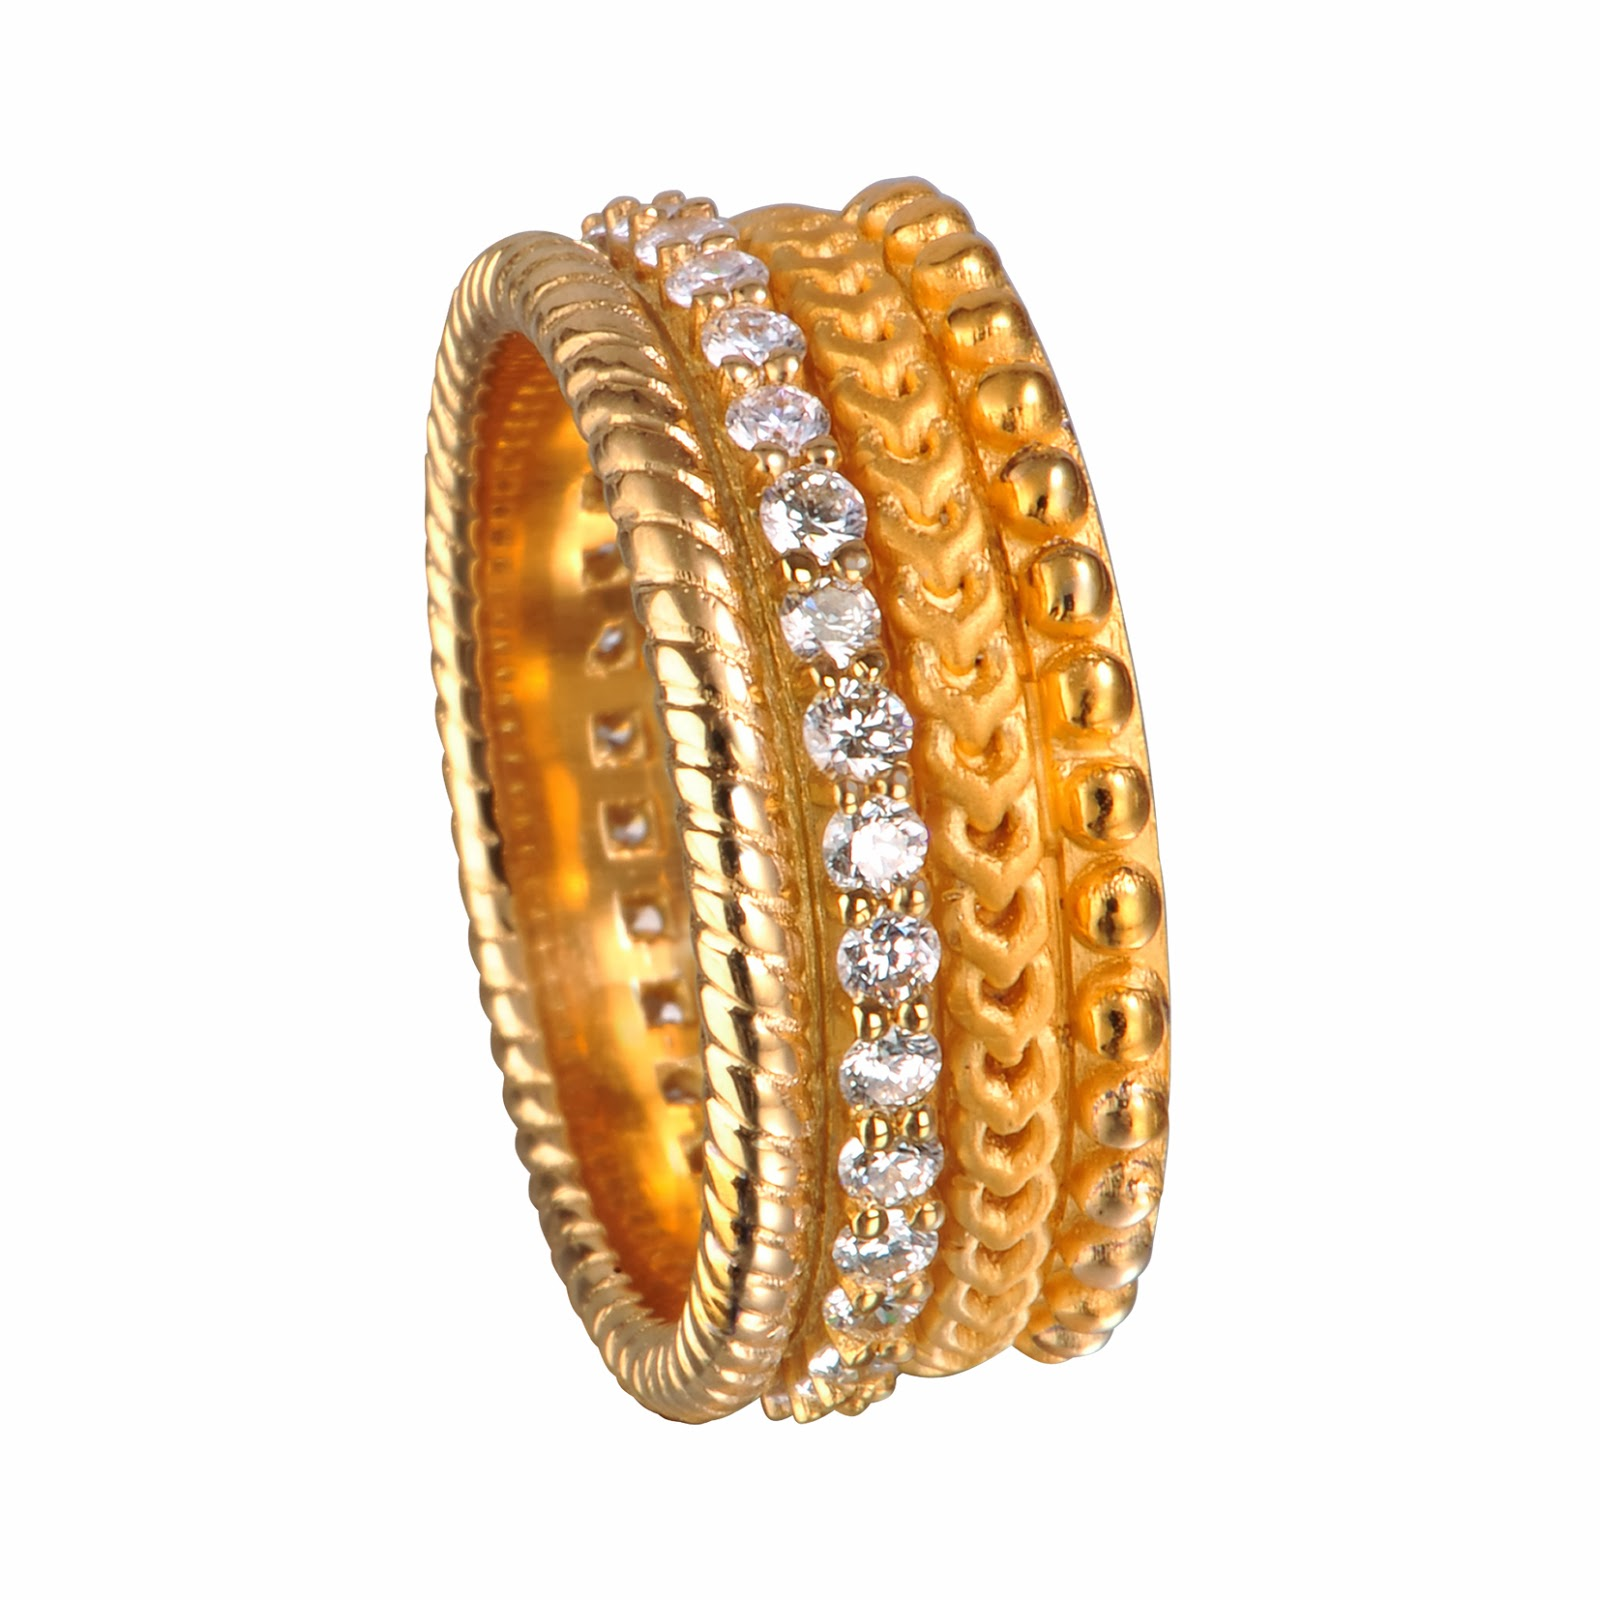 Lord Of The Rings Wedding Band 78 Nice These Carrera y Carrera